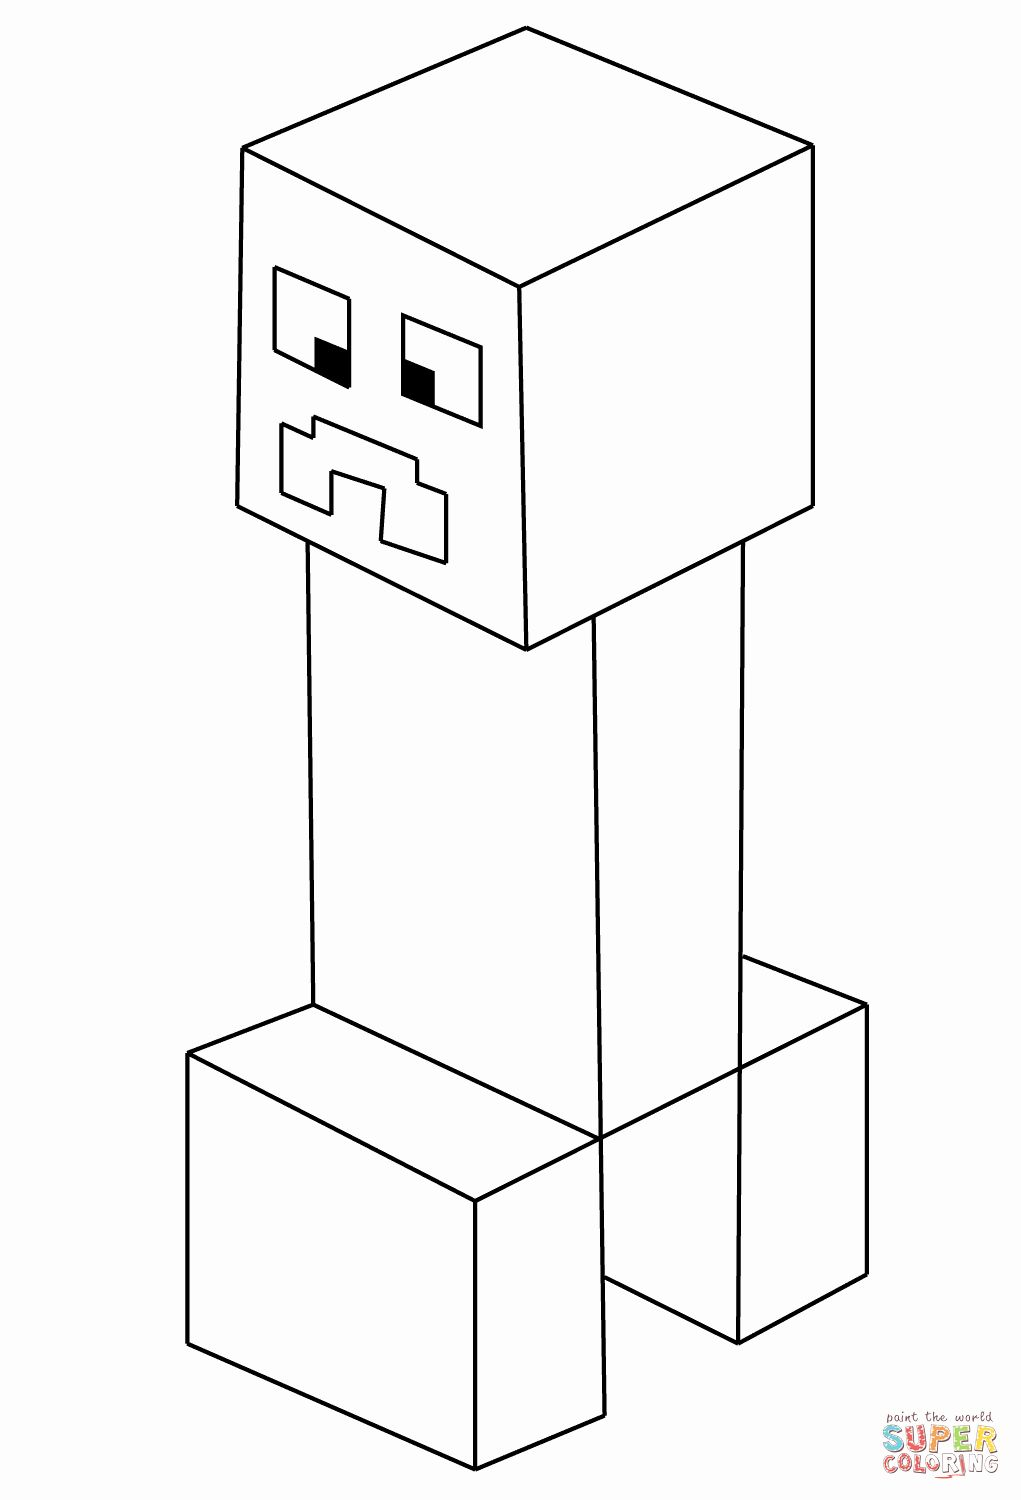 24 Minecraft Creeper Coloring Page in 2020 Minecraft